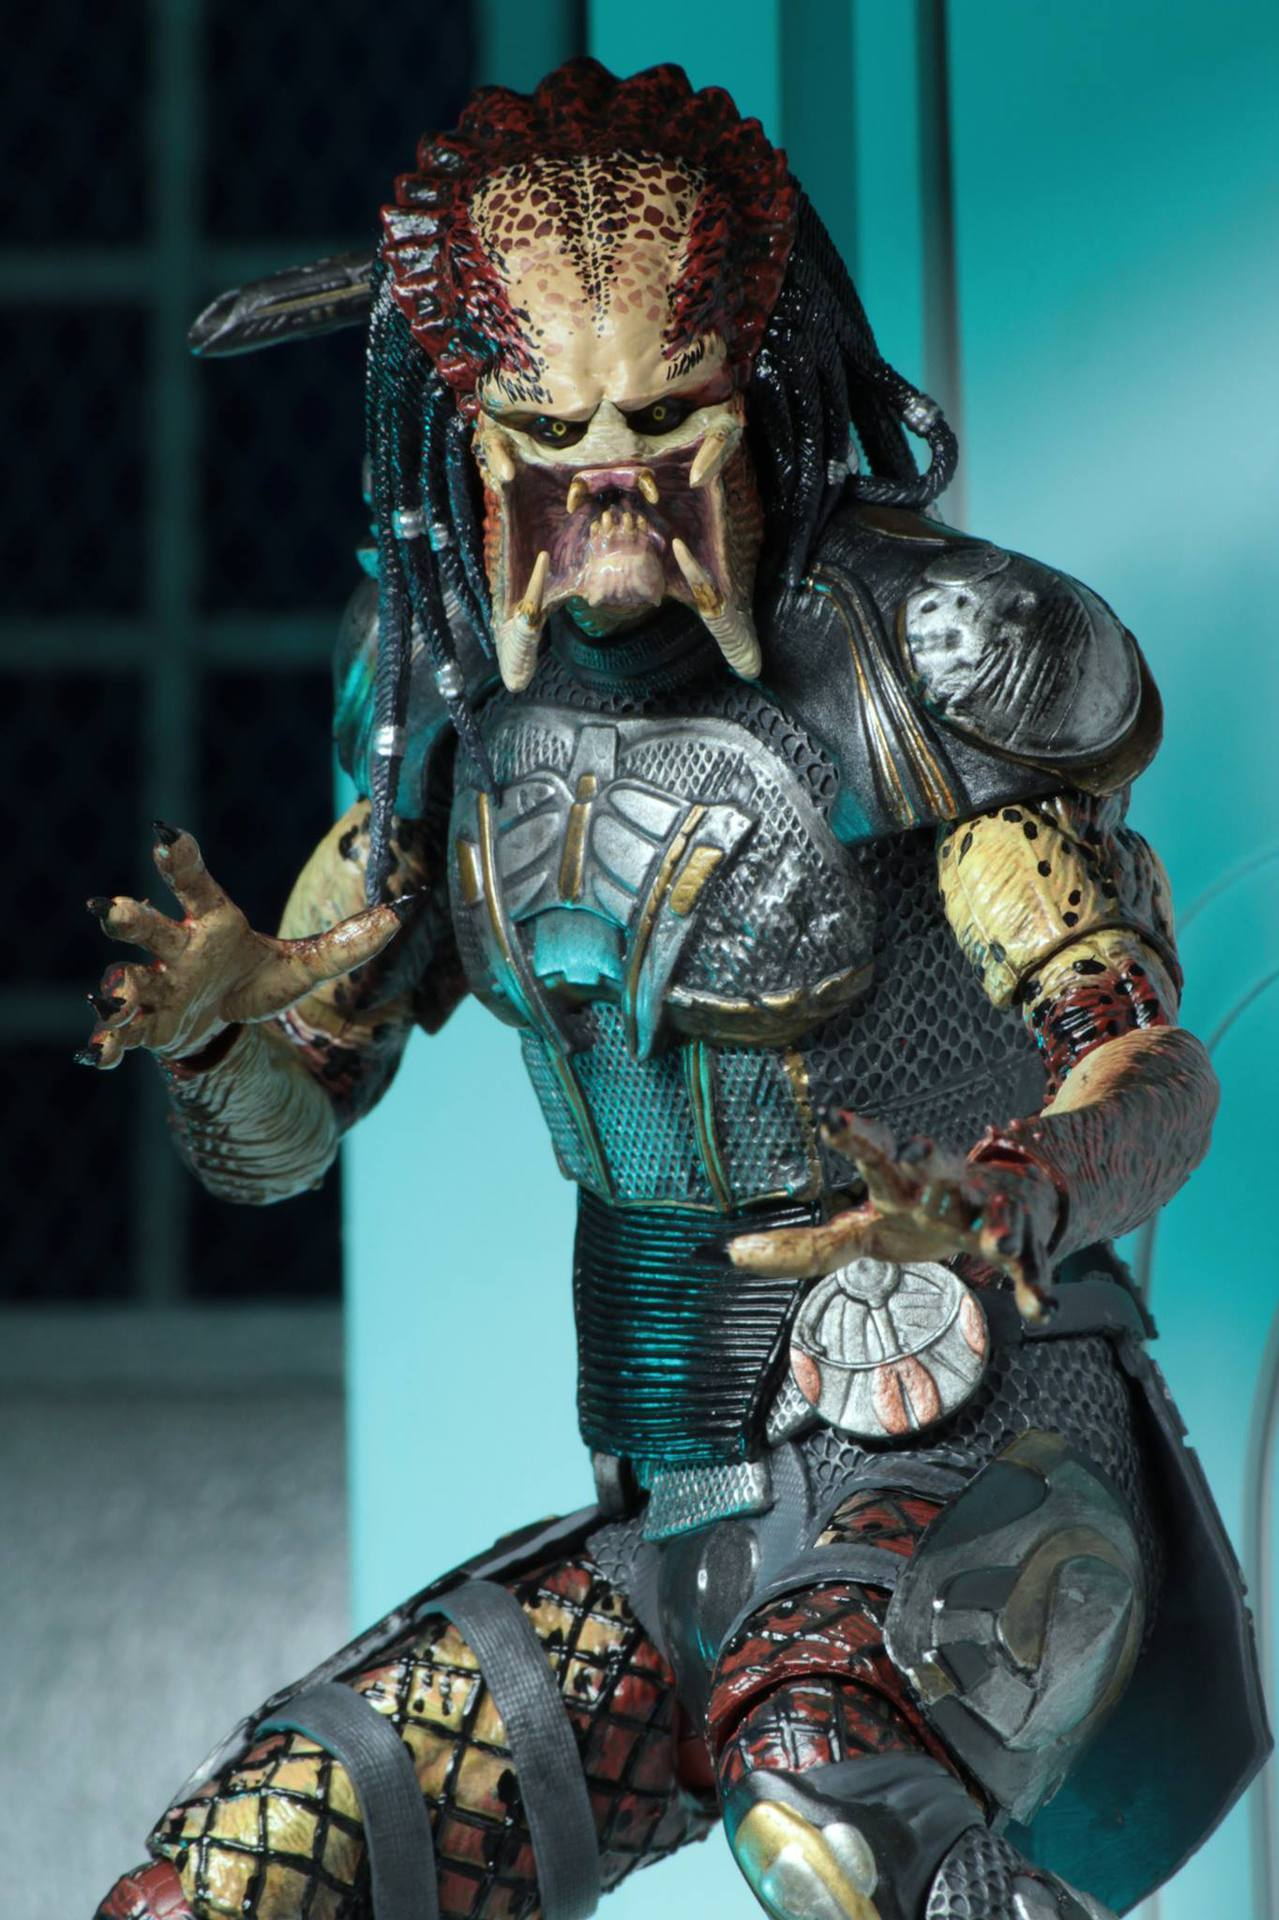 2pcs Head 2018 New NECA Aliens vs Predator Ultimate Fugitive Predator Unmasked Scarface Action Figure Toy Doll (9)